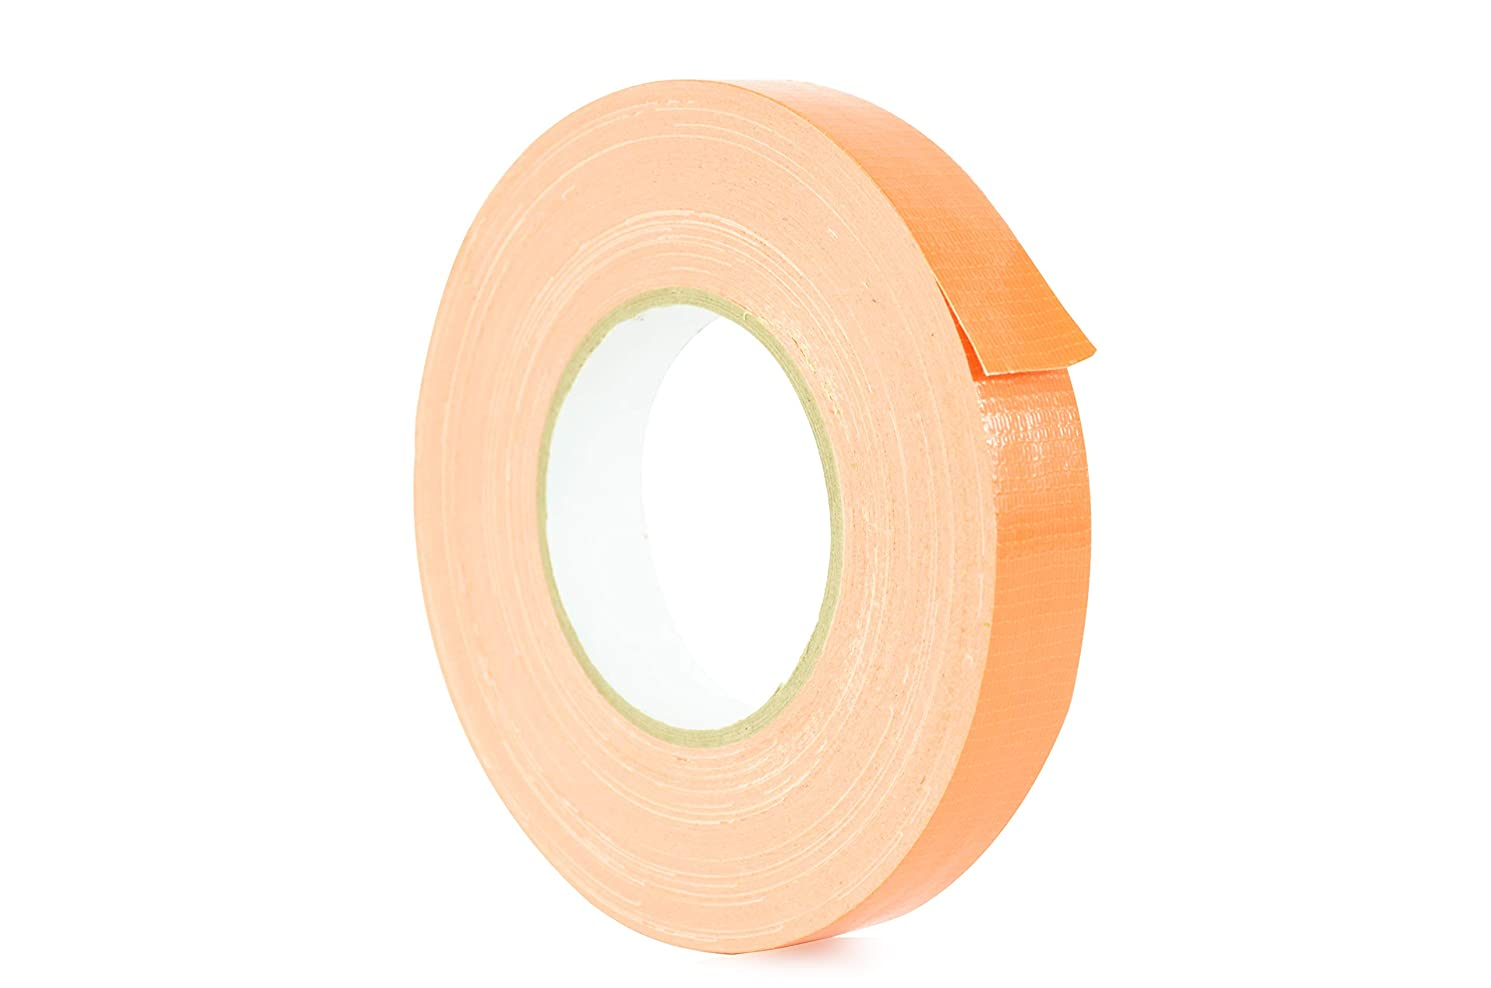 WOD CDT-36 Advanced Strength Industrial Grade Racing Orange Duct Tape, Waterproof, UV Resistant For Crafts & Home Improvement (Available in Multiple Sizes & Colors): 1 in. x 60 yds. (Pack of 1)